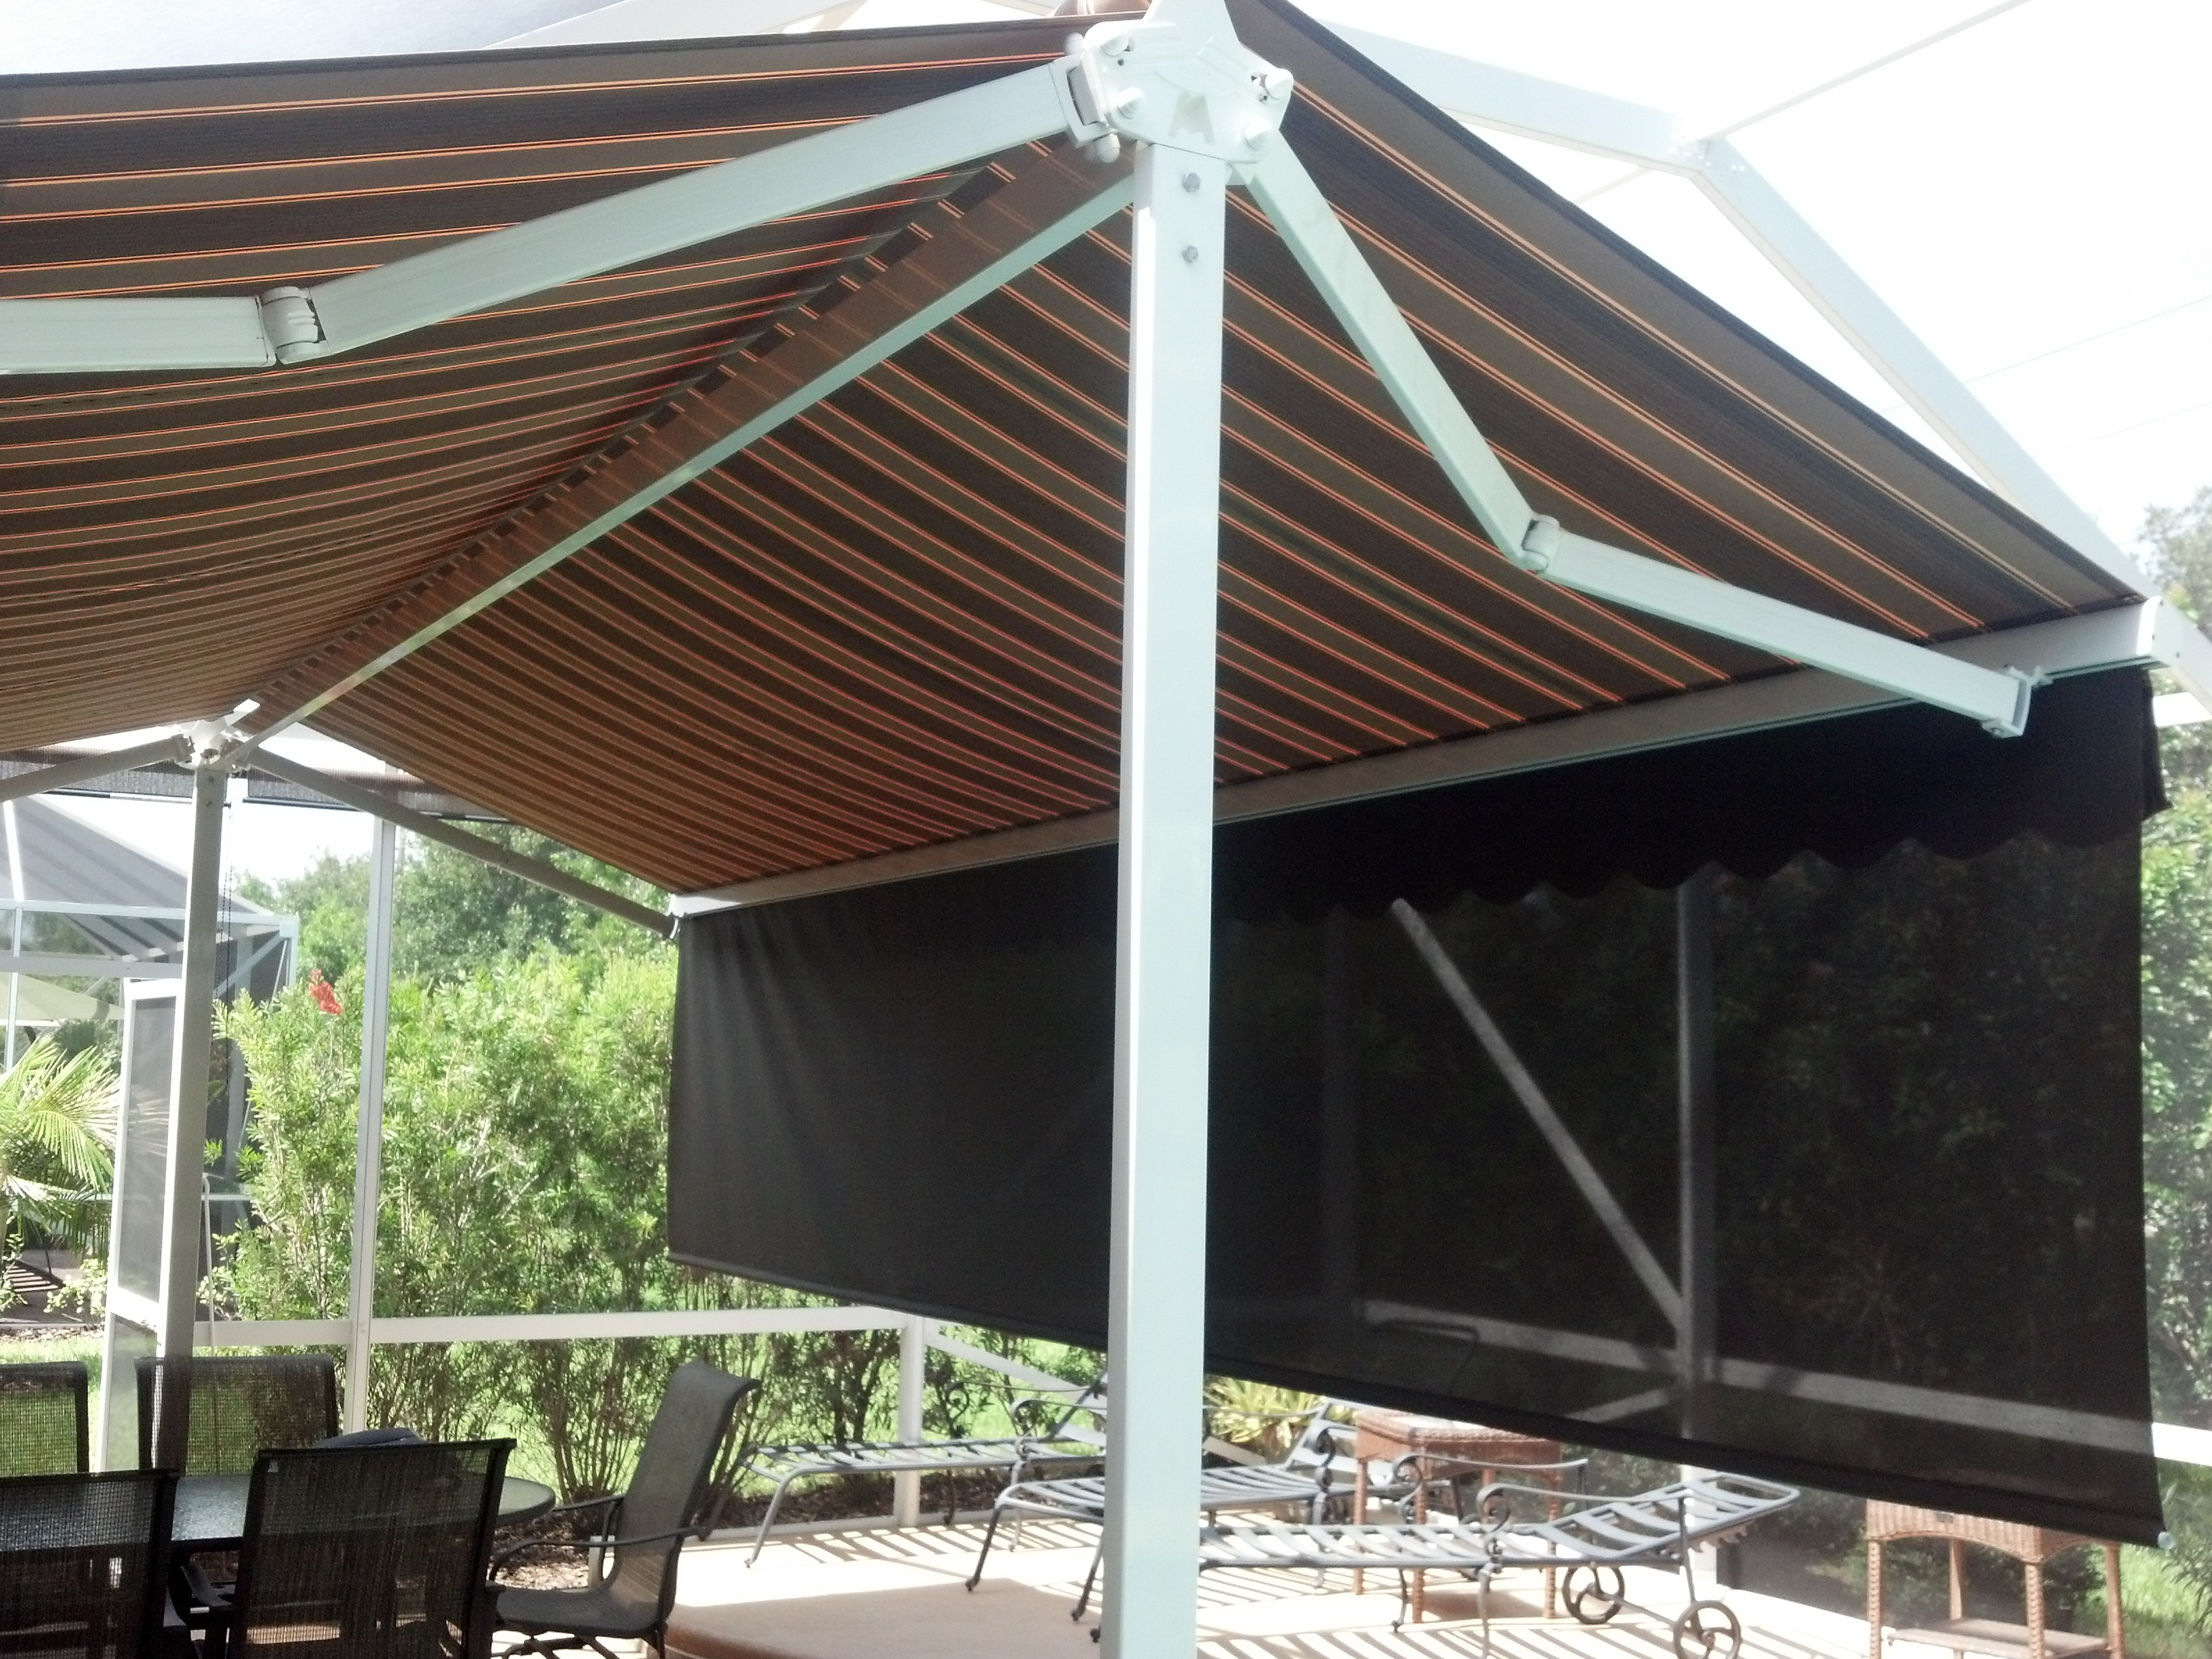 am pate avec black shop azul crop awning azulavecpatteblackcrop awnings freestanding patte multiples en auvents gemini